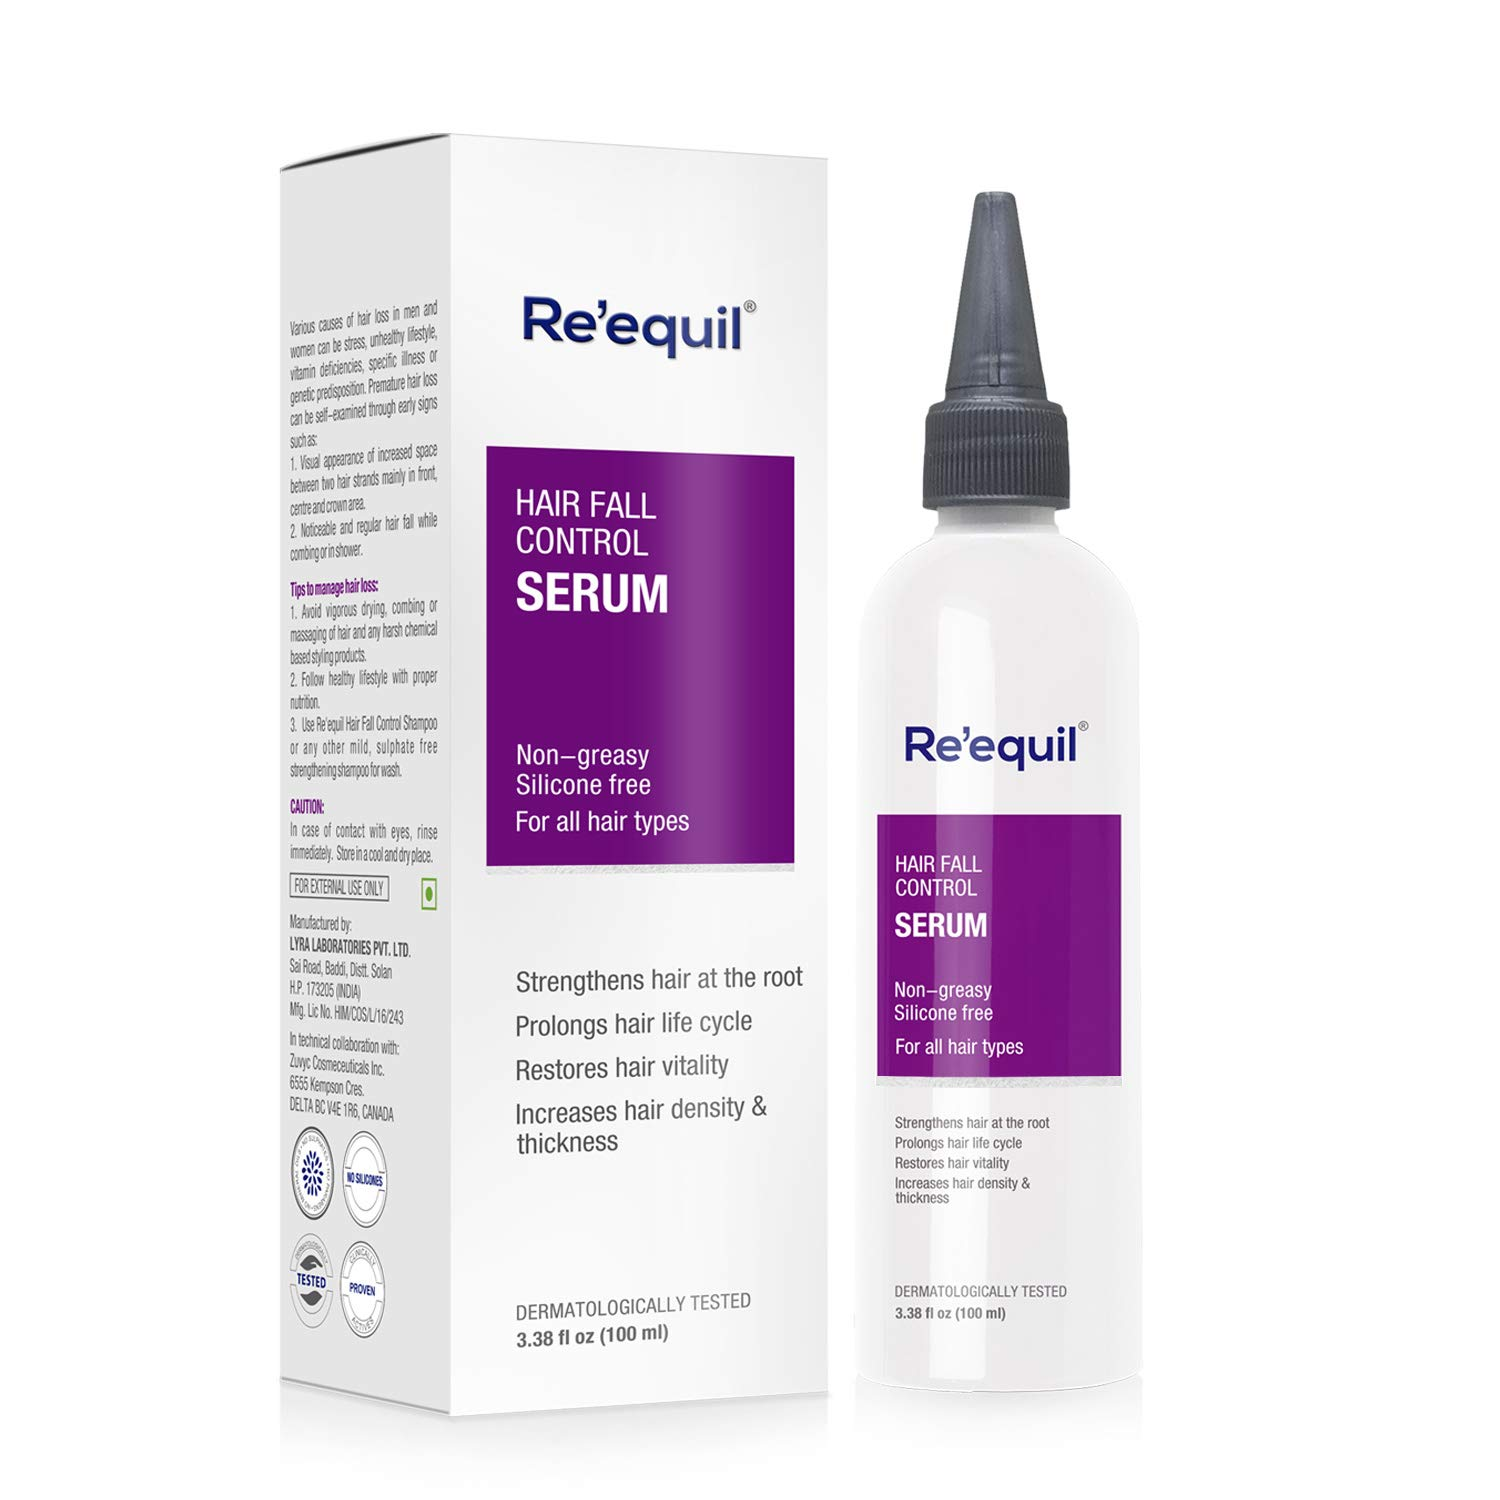 Hair Fall Control Serum   Hair Growth Serum - 100ml   Re'equil product image